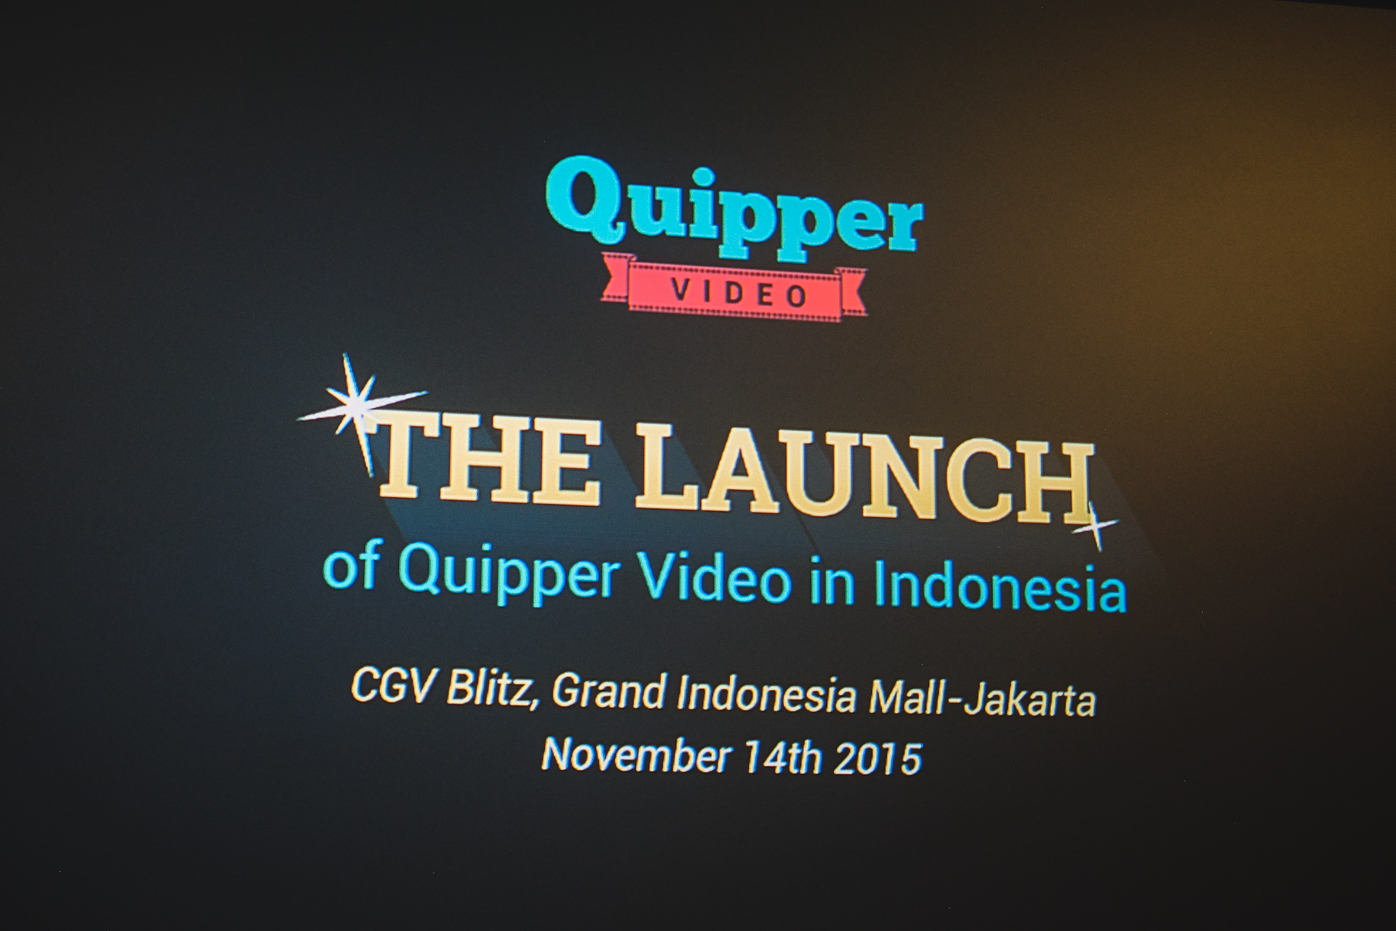 Quipper Video Indonesia Grand Launching Eatandtreats Indonesian Sbmptn Before I Talked About The Event Want To Explain More A Little Information London Based Company Expanded Their Network